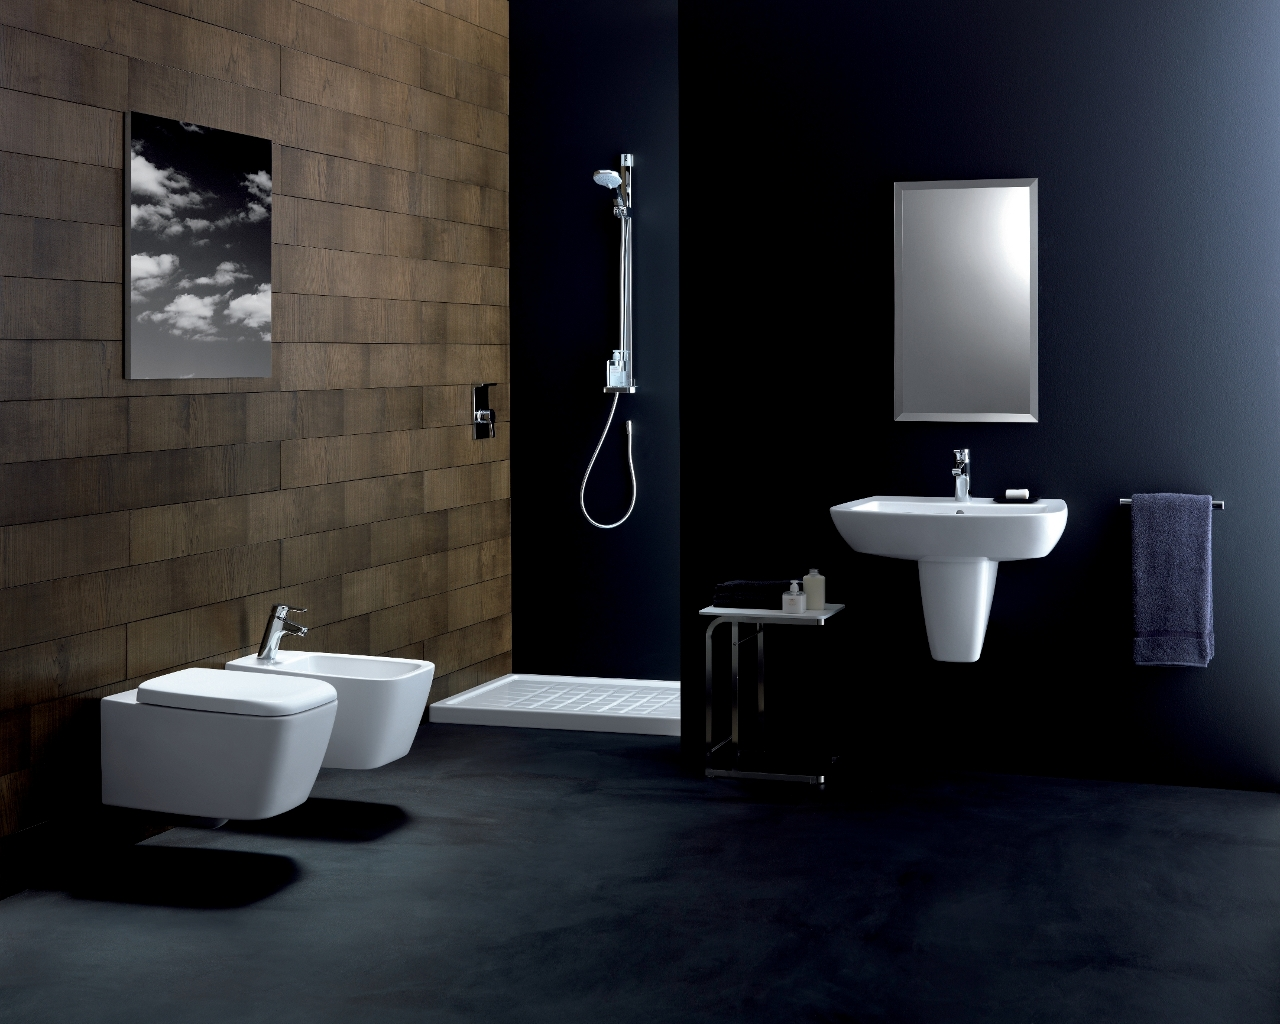 Ideal standard mobili bagno stunning best ideal standard connect space mobile sottolavabo xx mm - Mobili bagno ideal standard ...